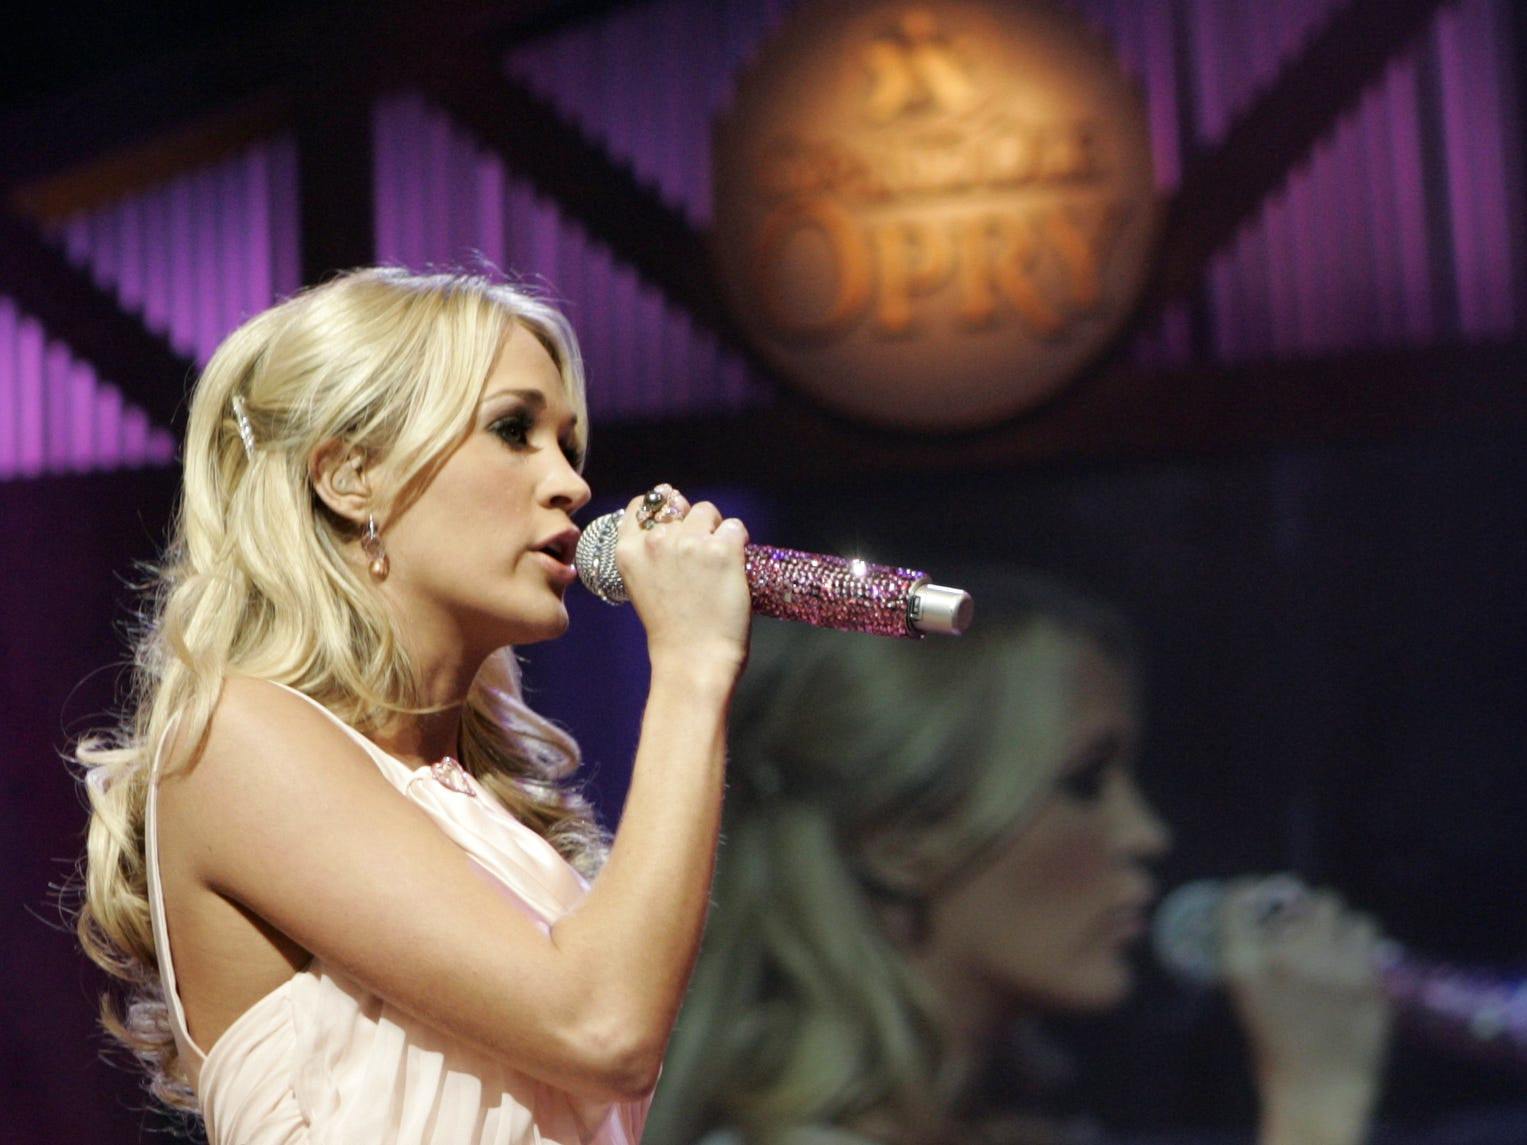 OCT. 26